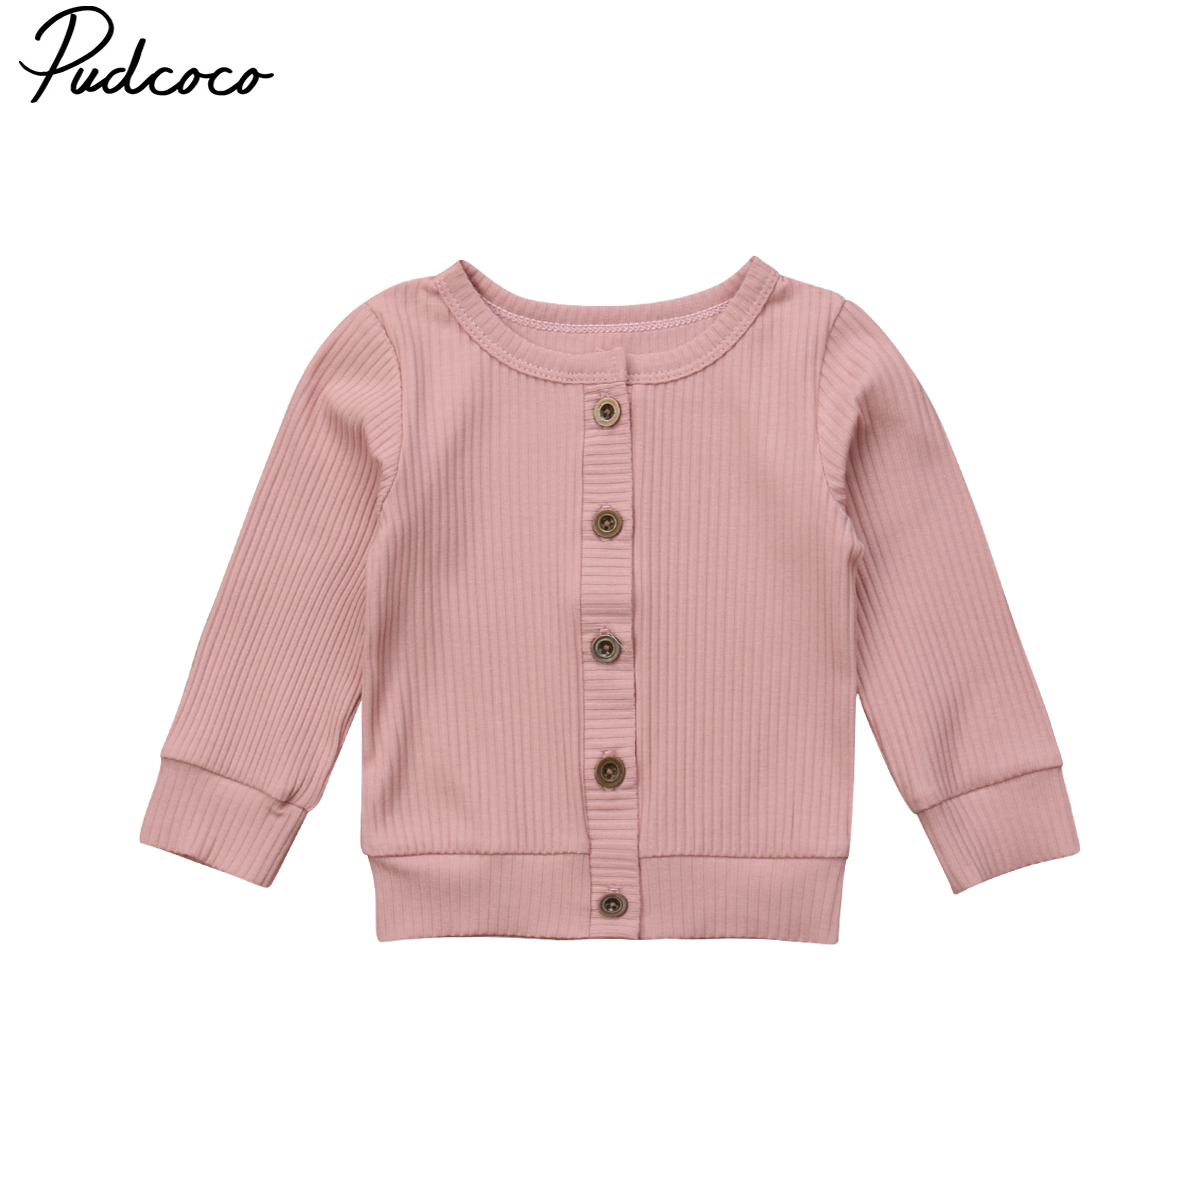 Pudcoco 0-24Moths Casual Newborn Infant Baby Girl Long Sleeves Knitted Sweater Cardigan Coat Tops 5 Colur